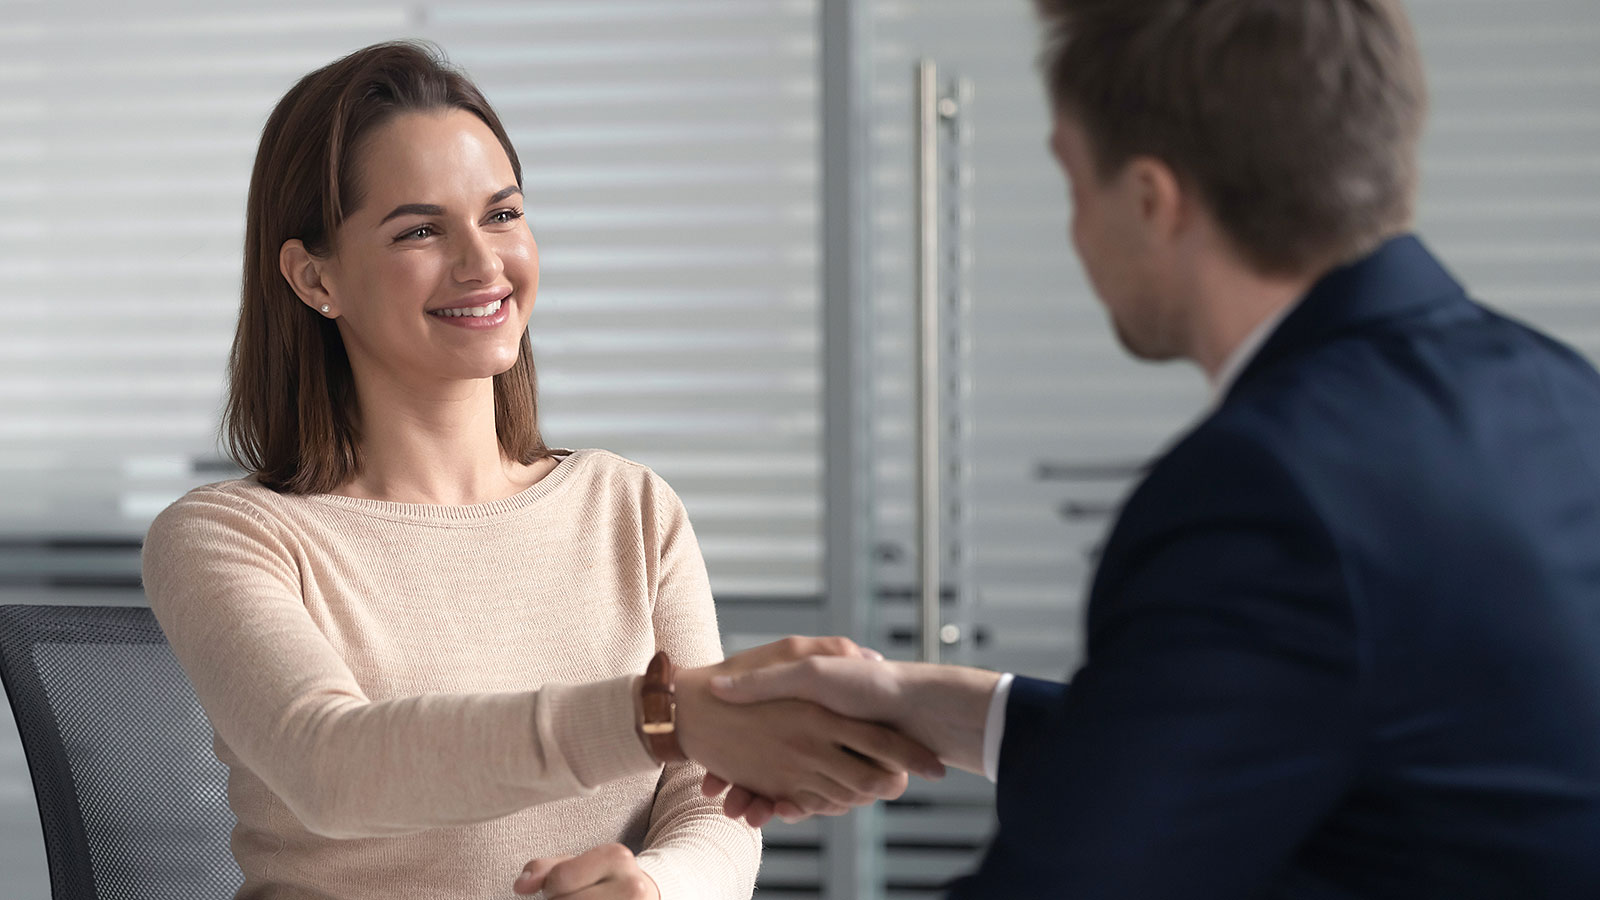 Asking for a raise: How to get the money you deserve